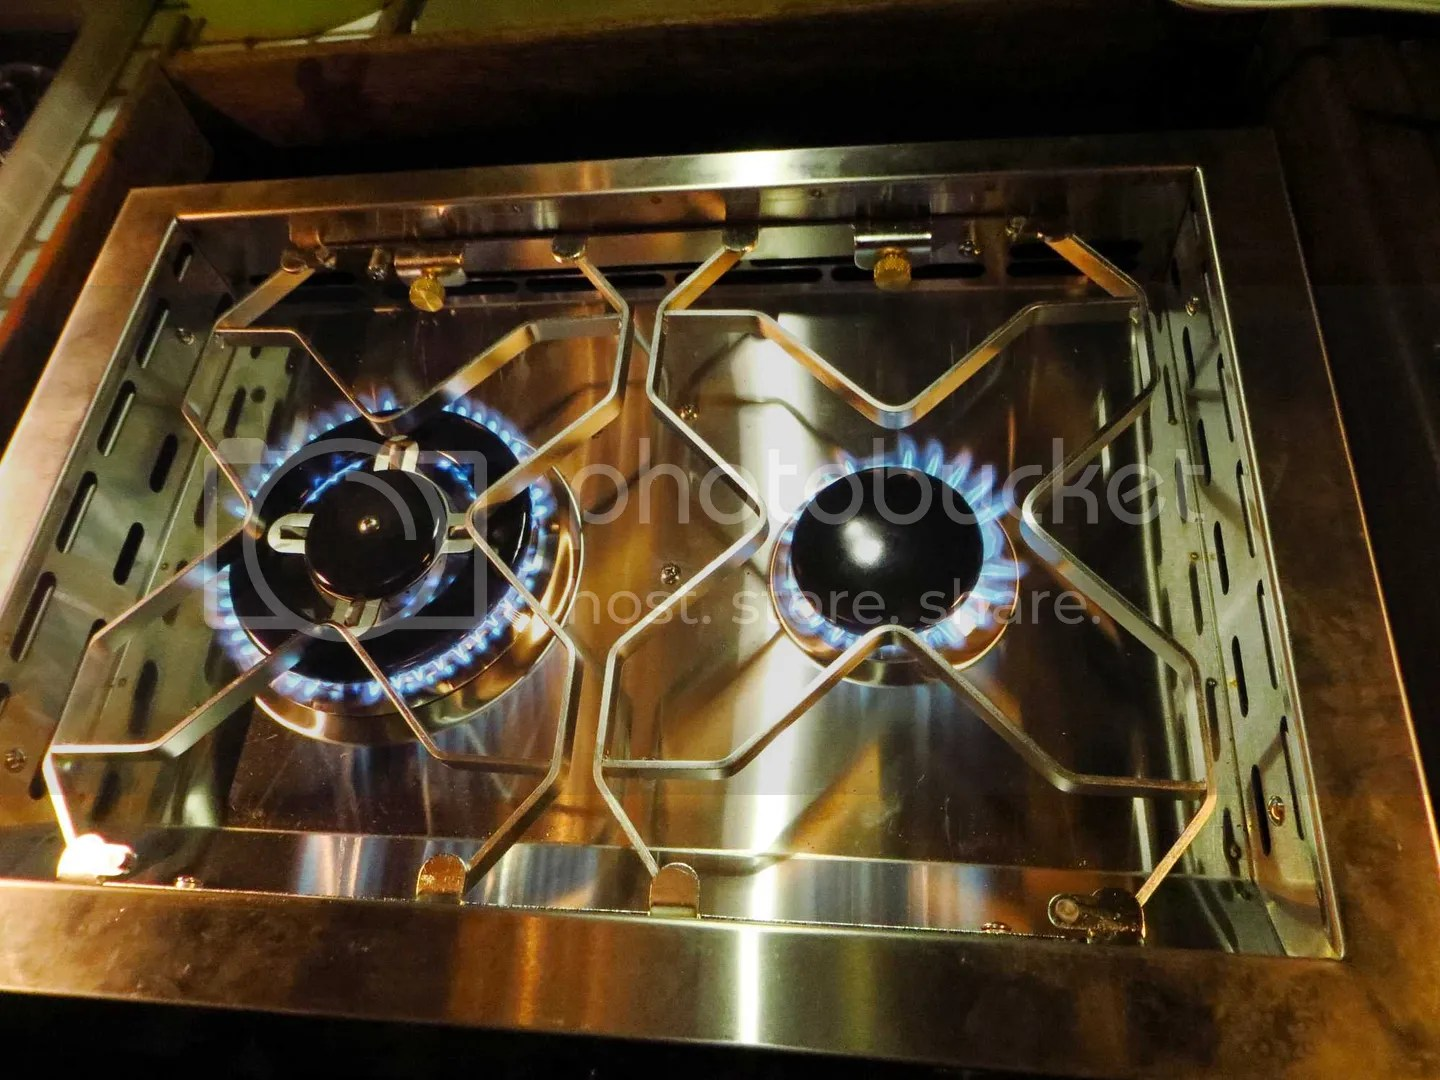 Propane flames on the new Dickinson Caribbean stove